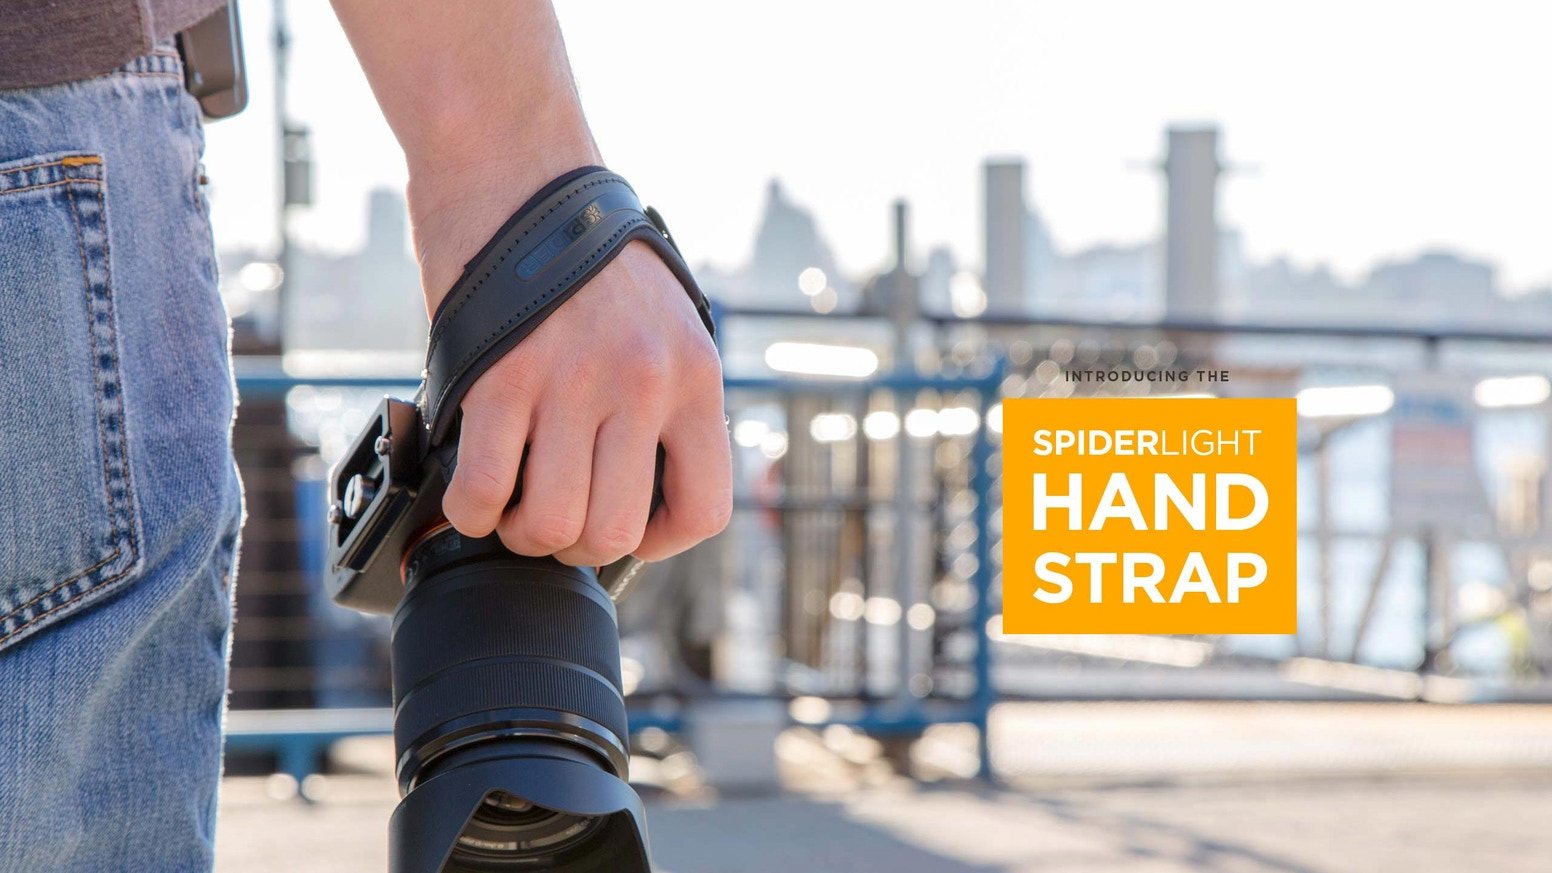 A groundbreaking new hand strap designed specifically for mirrorless and small DSLR cameras. Go anywhere, from trail, to street, to studio, with a secure and comfortable grip.